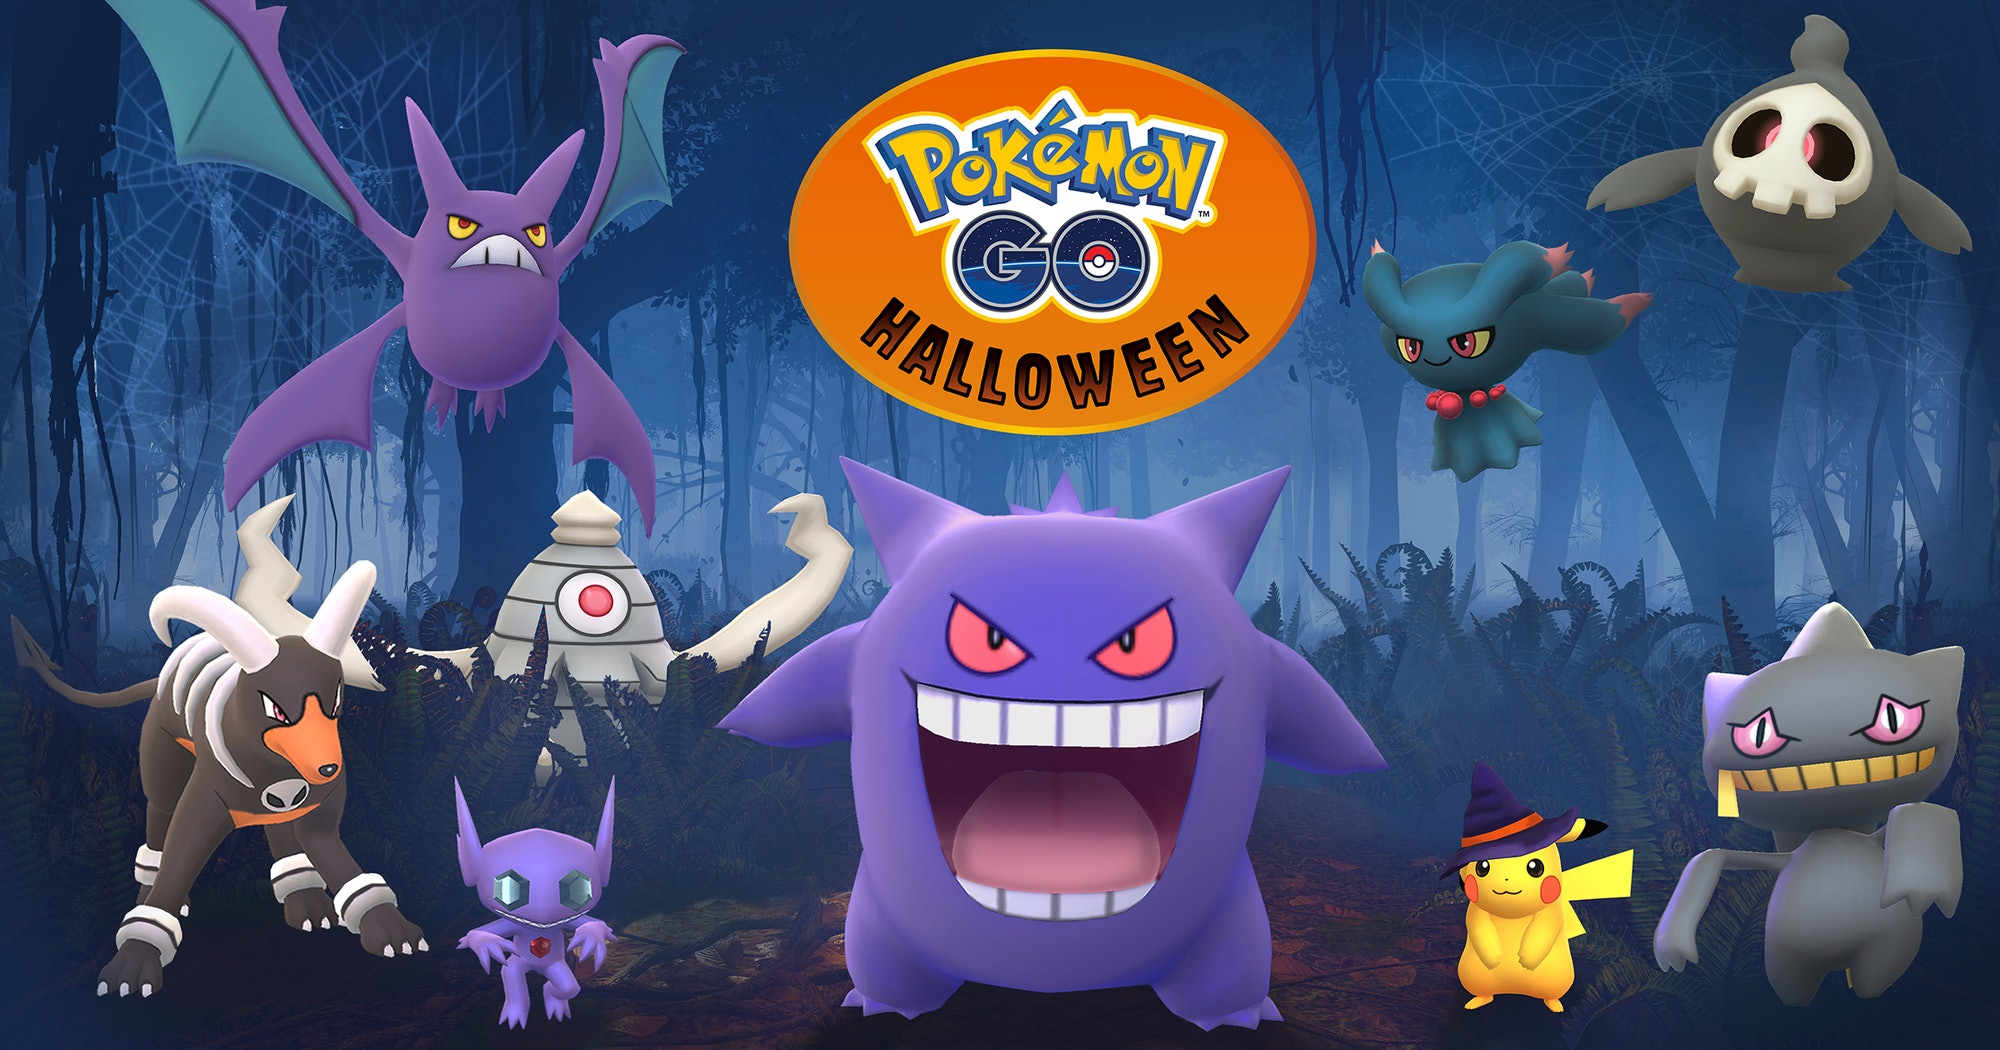 These spooky Pokémon are available in-game right now.